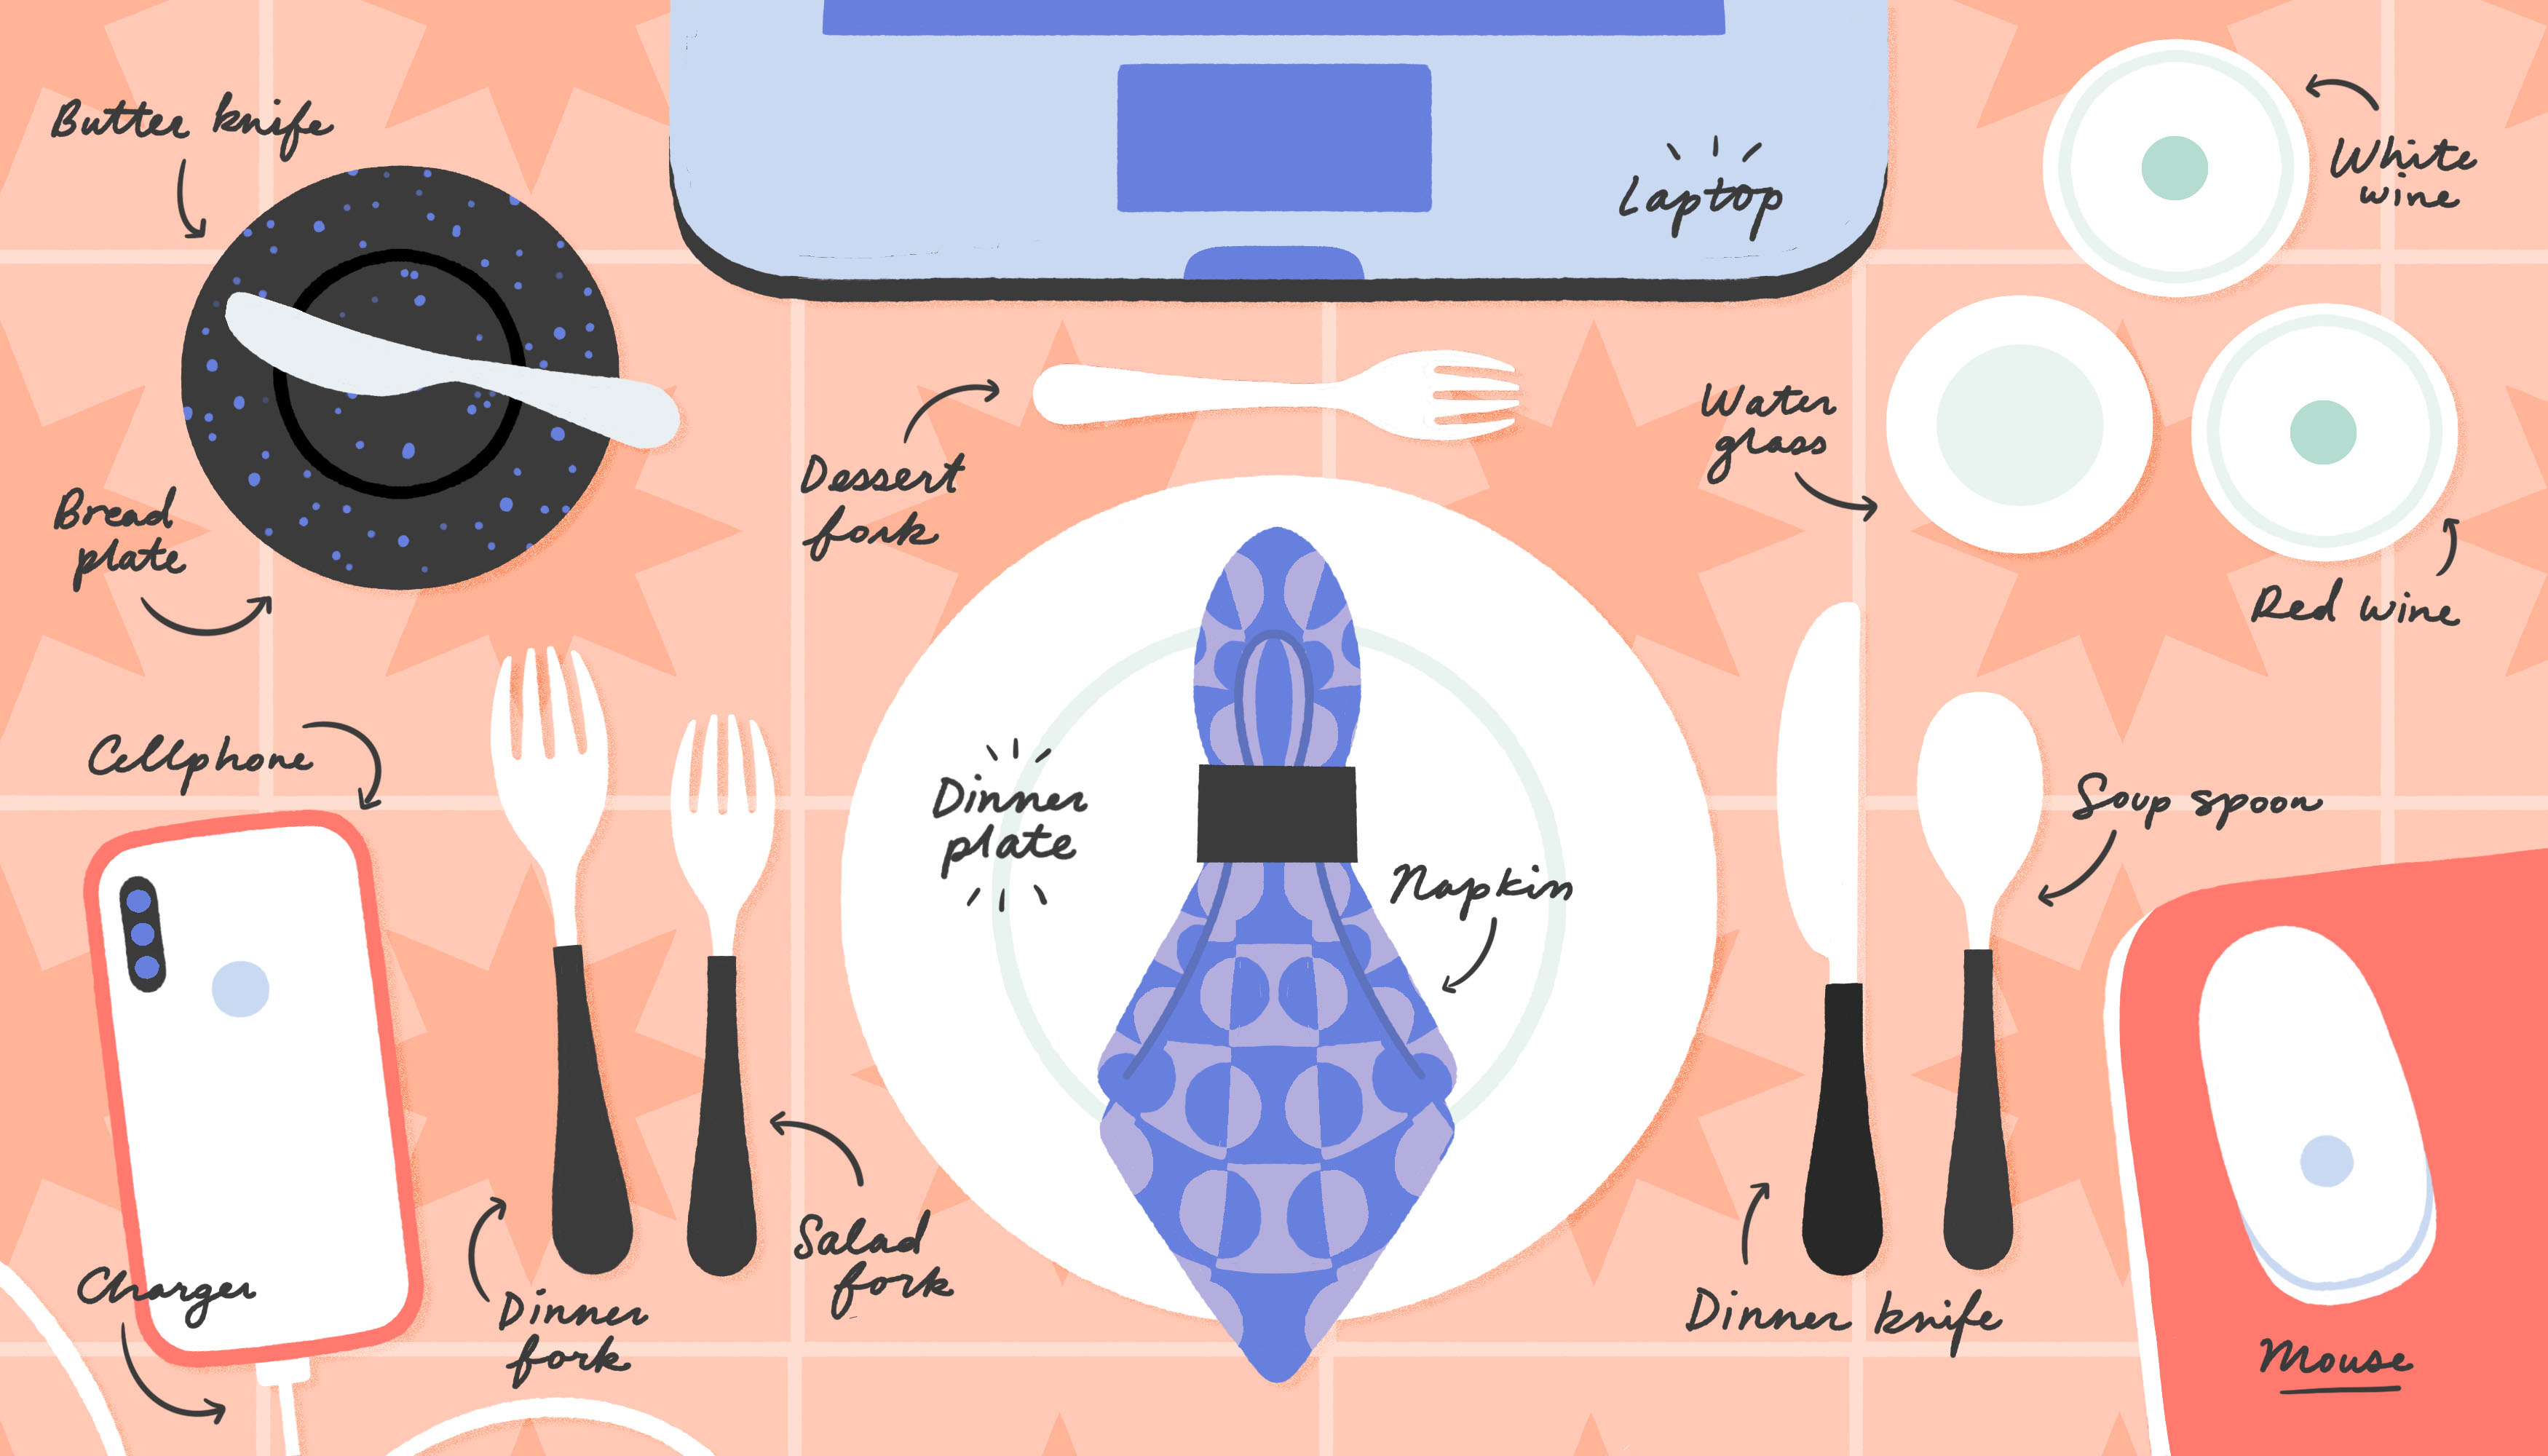 Illustration of a table with a laptop, dinner plate and napkins, fork, and a phone.